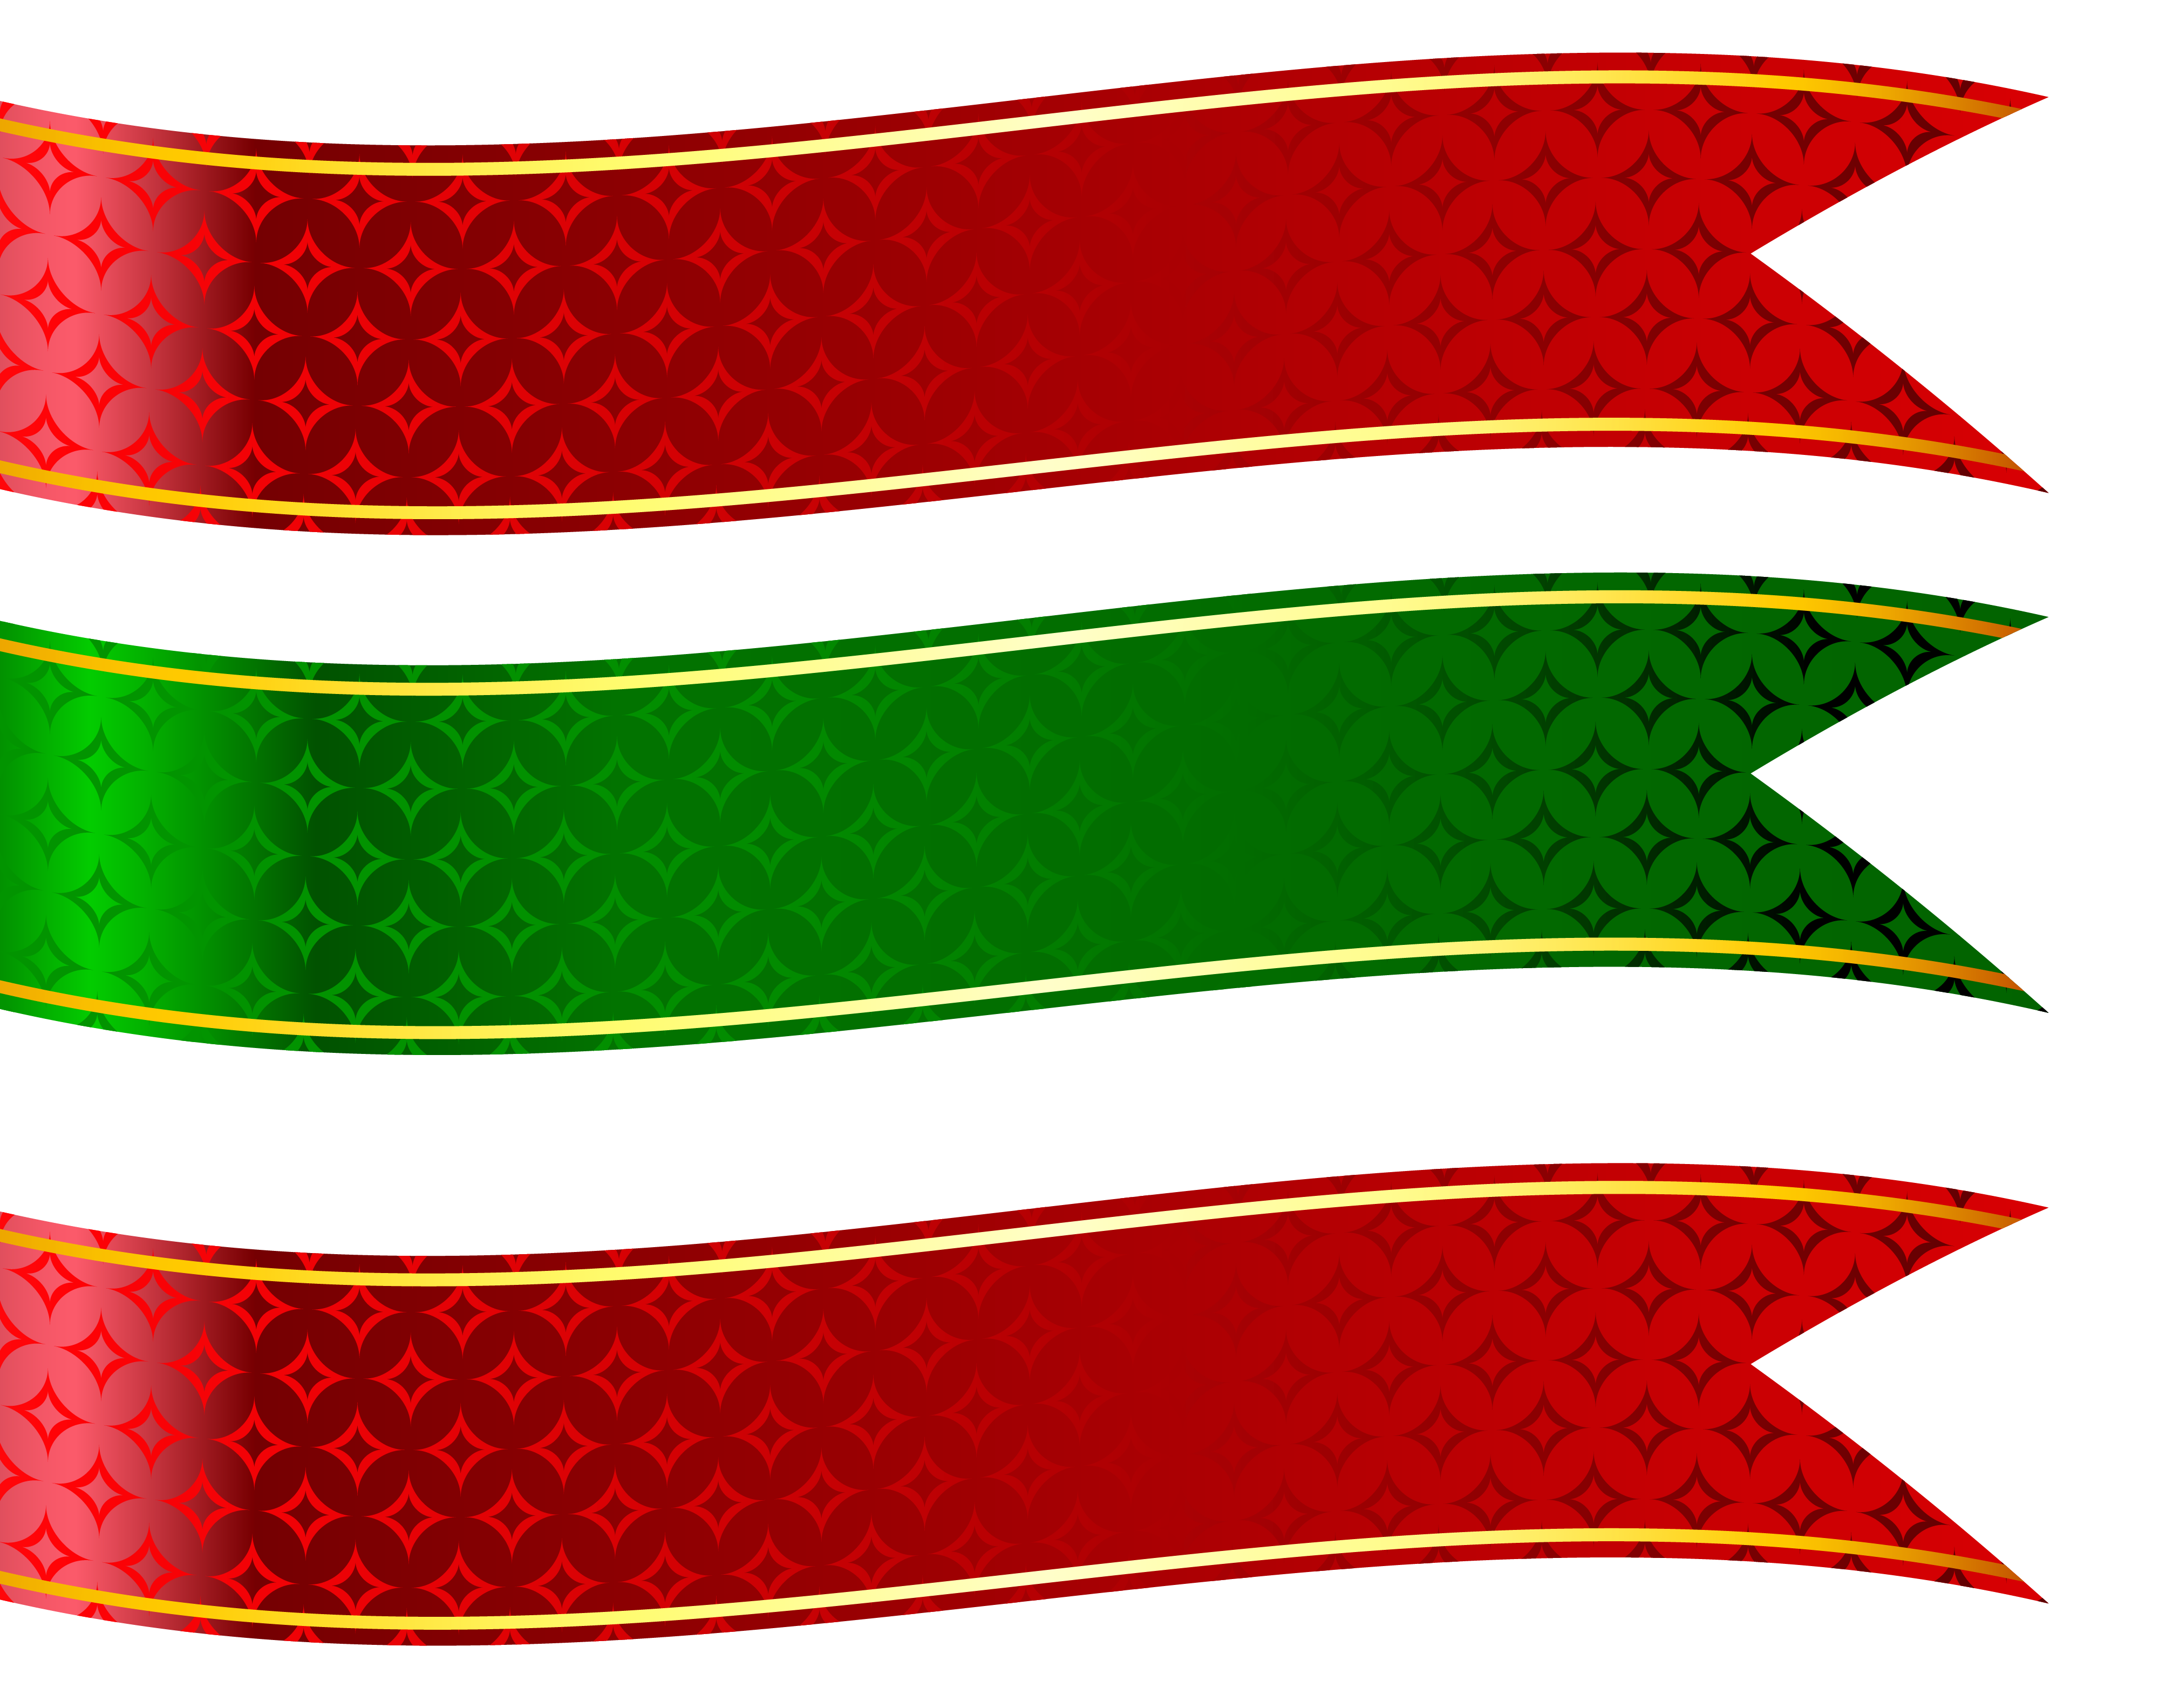 Green and red banners. Banner clip art shape